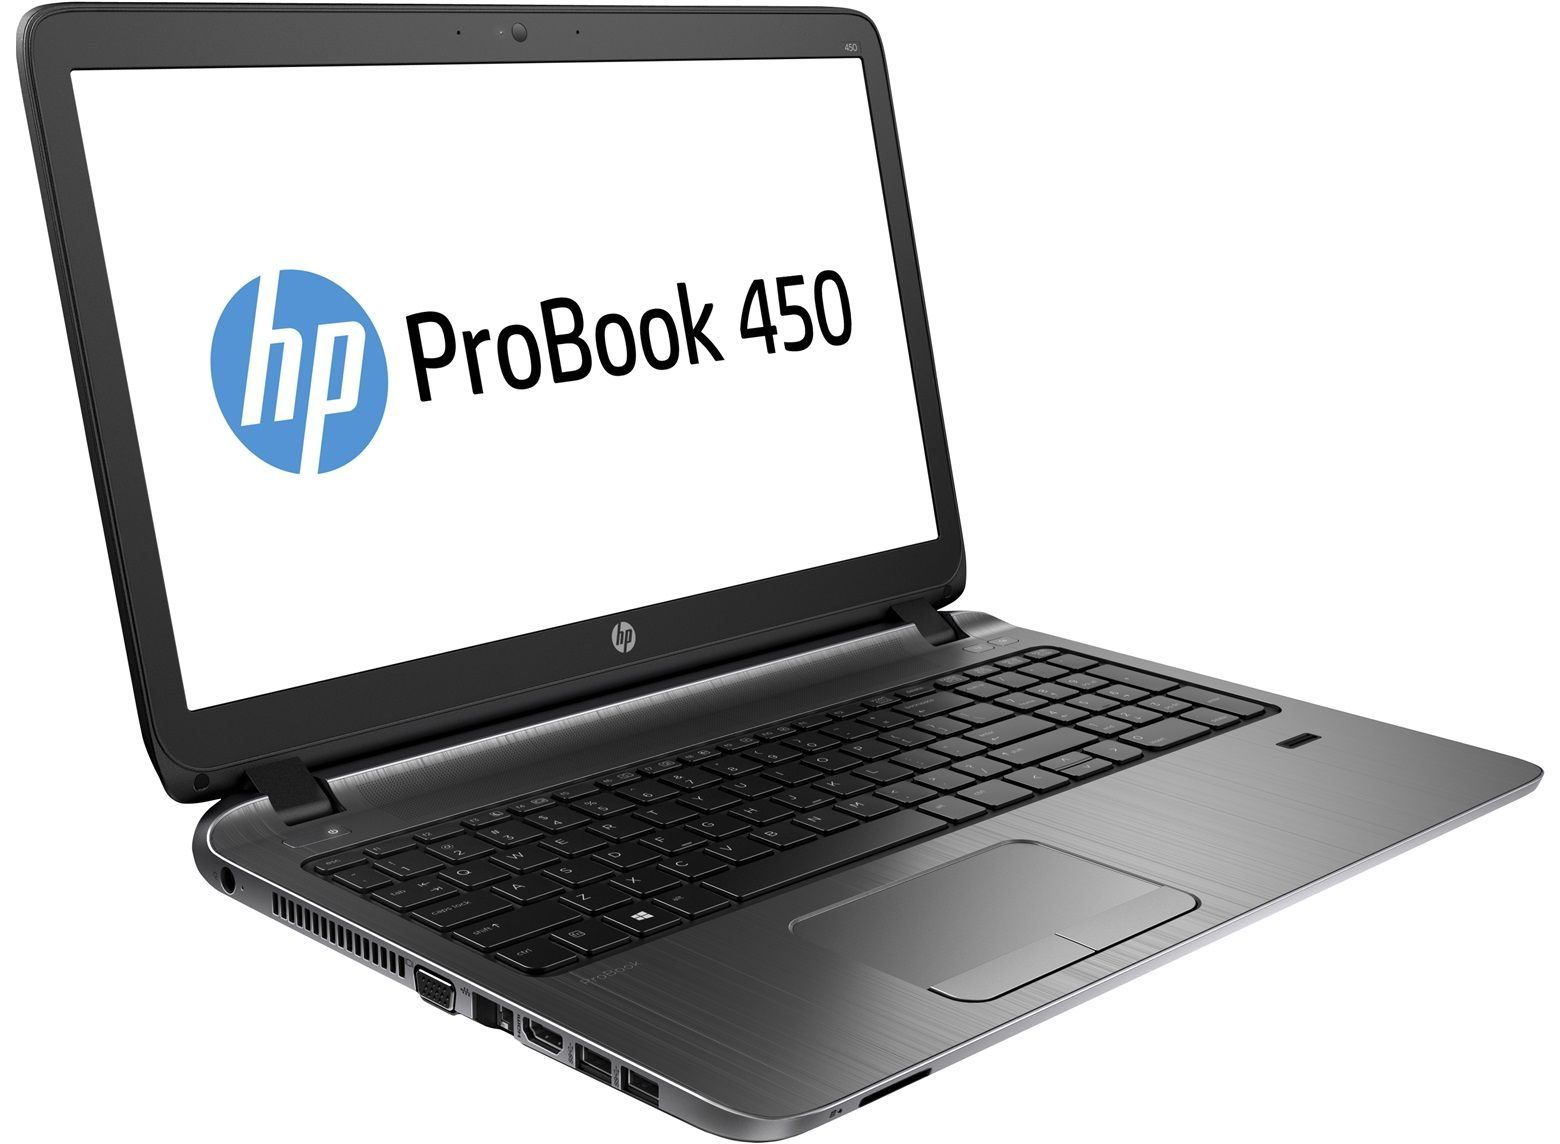 "HP ProBook 450 G2 (J4T19EA) (Core i5 4210U 1700 Mhz/15.6""/1366x768/8.0Gb/1000Gb/DVD-RW/Intel HD Graphics 4400/Wi-Fi/Bluetooth/Win 7 Pro 64)"